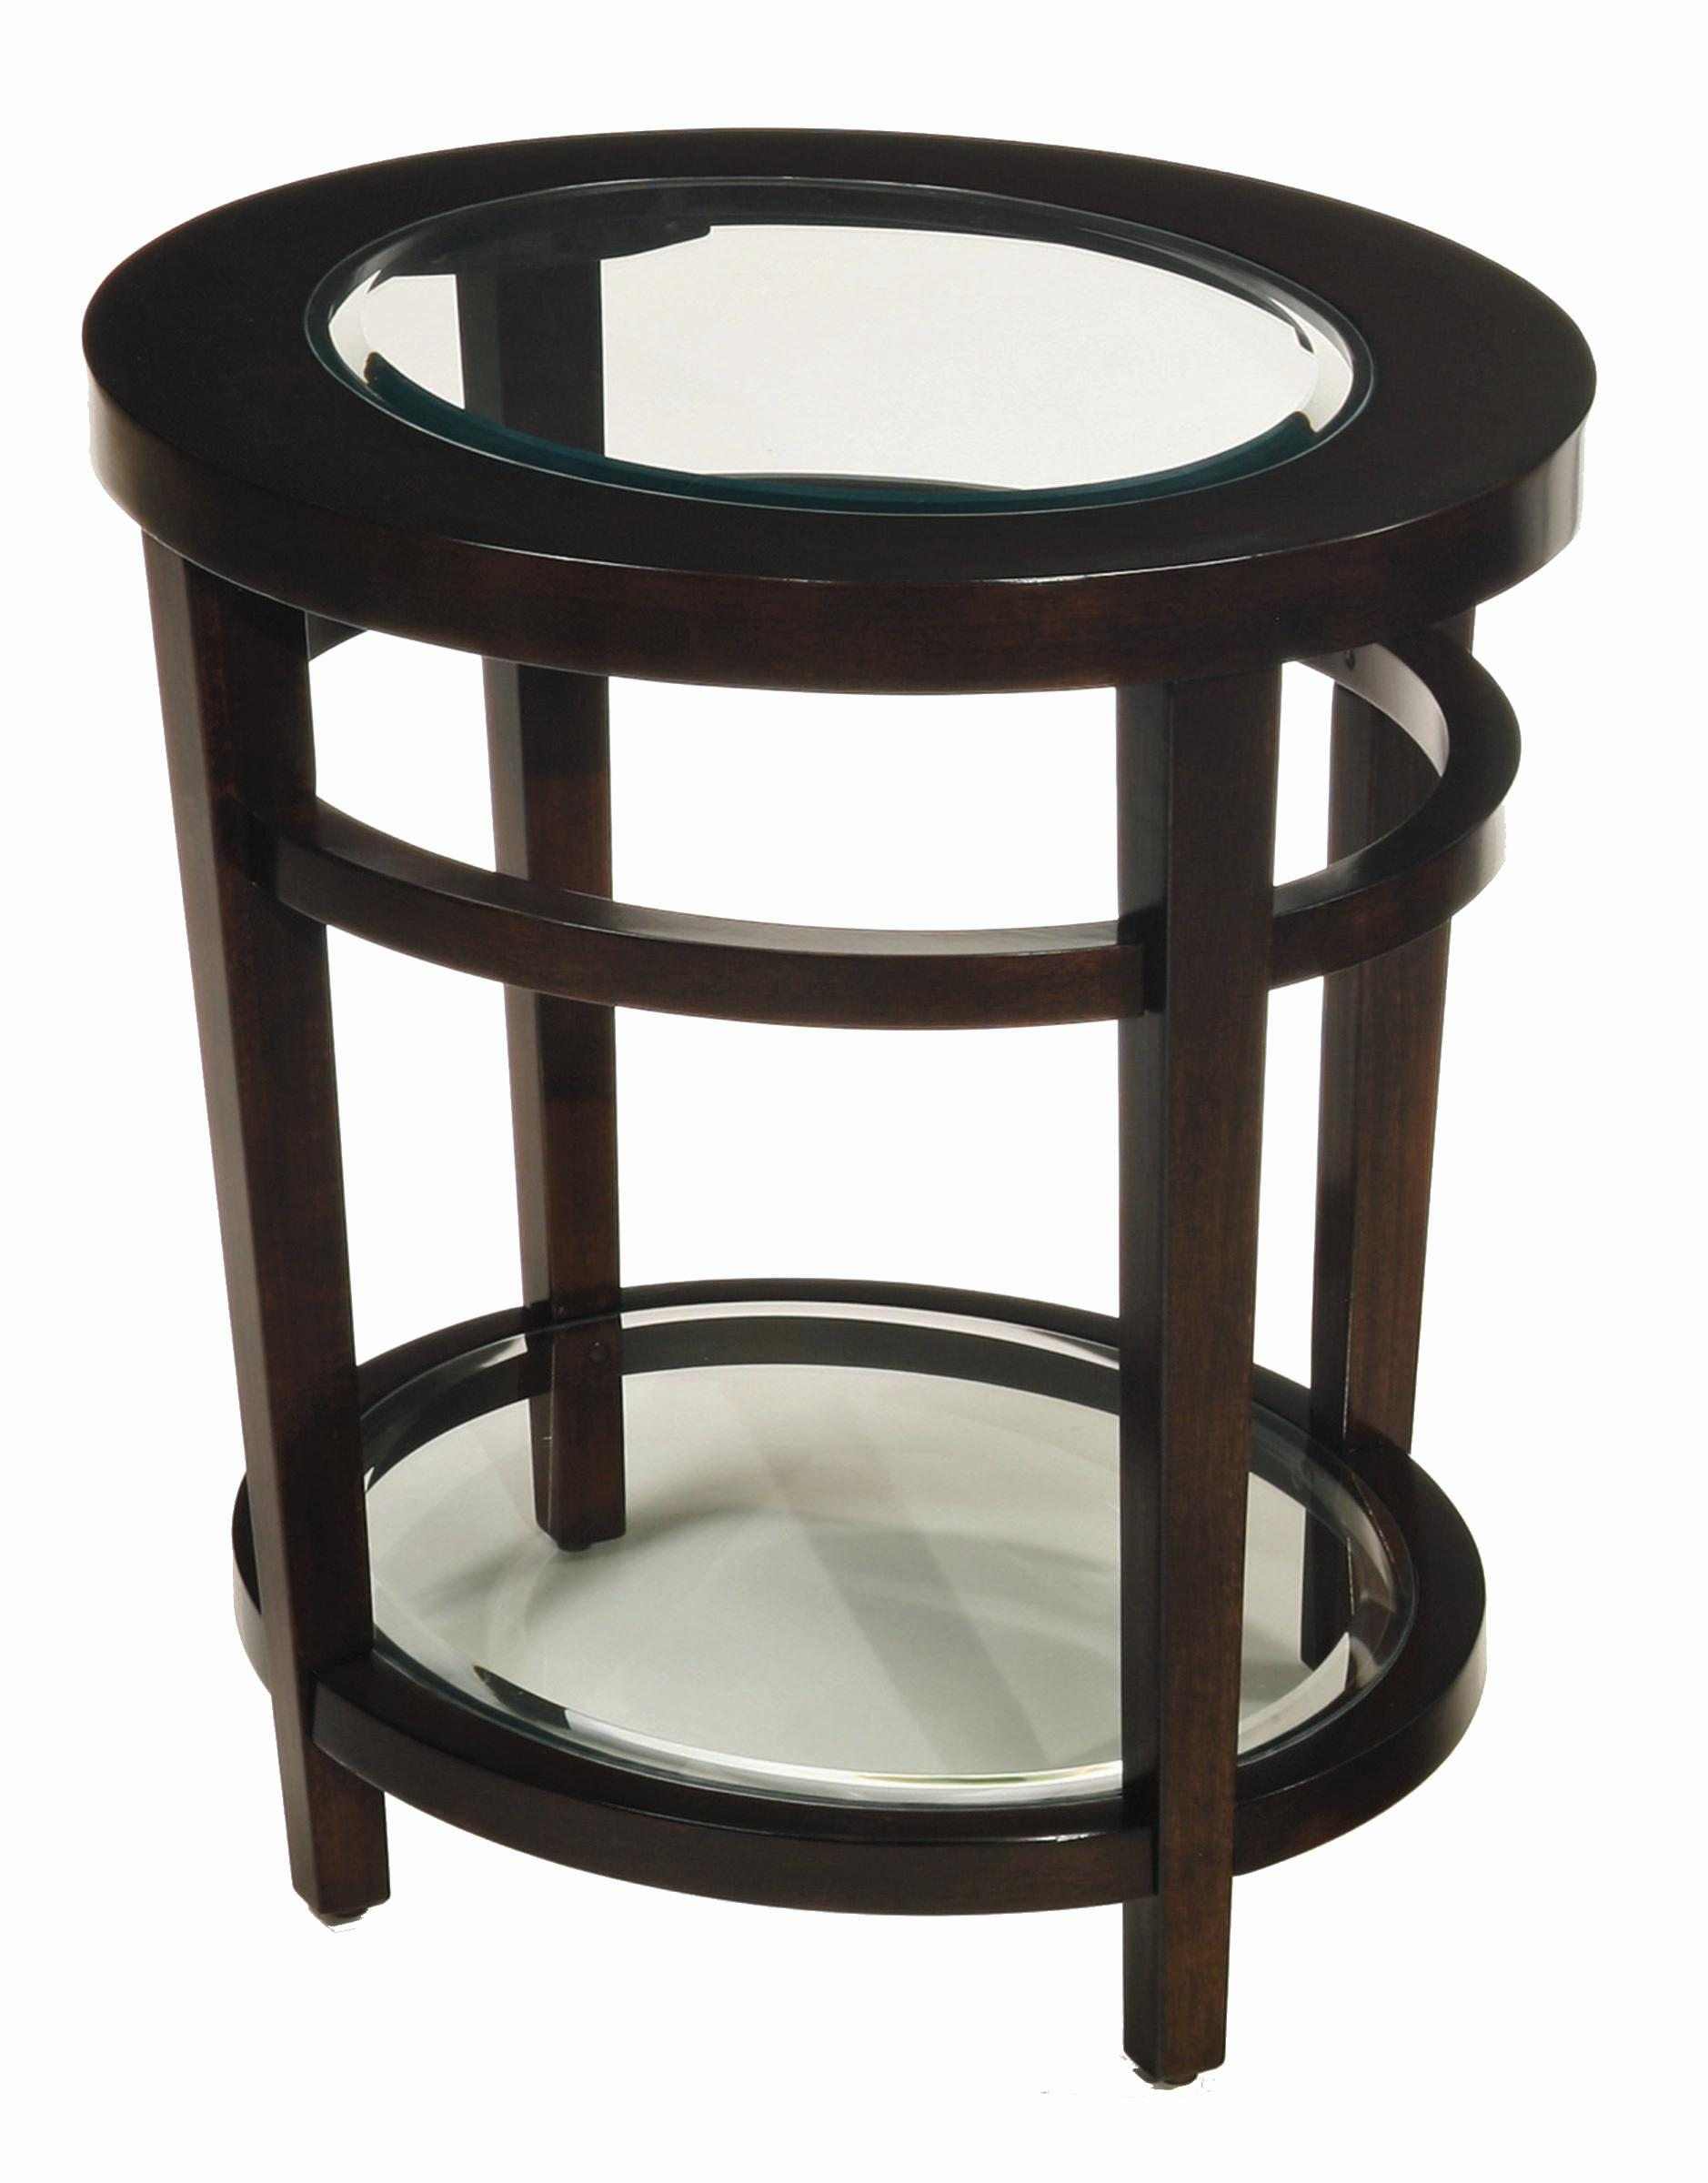 Morris Home Furnishings Urbana Atwell Ave End Table - Item Number: T2081536-00